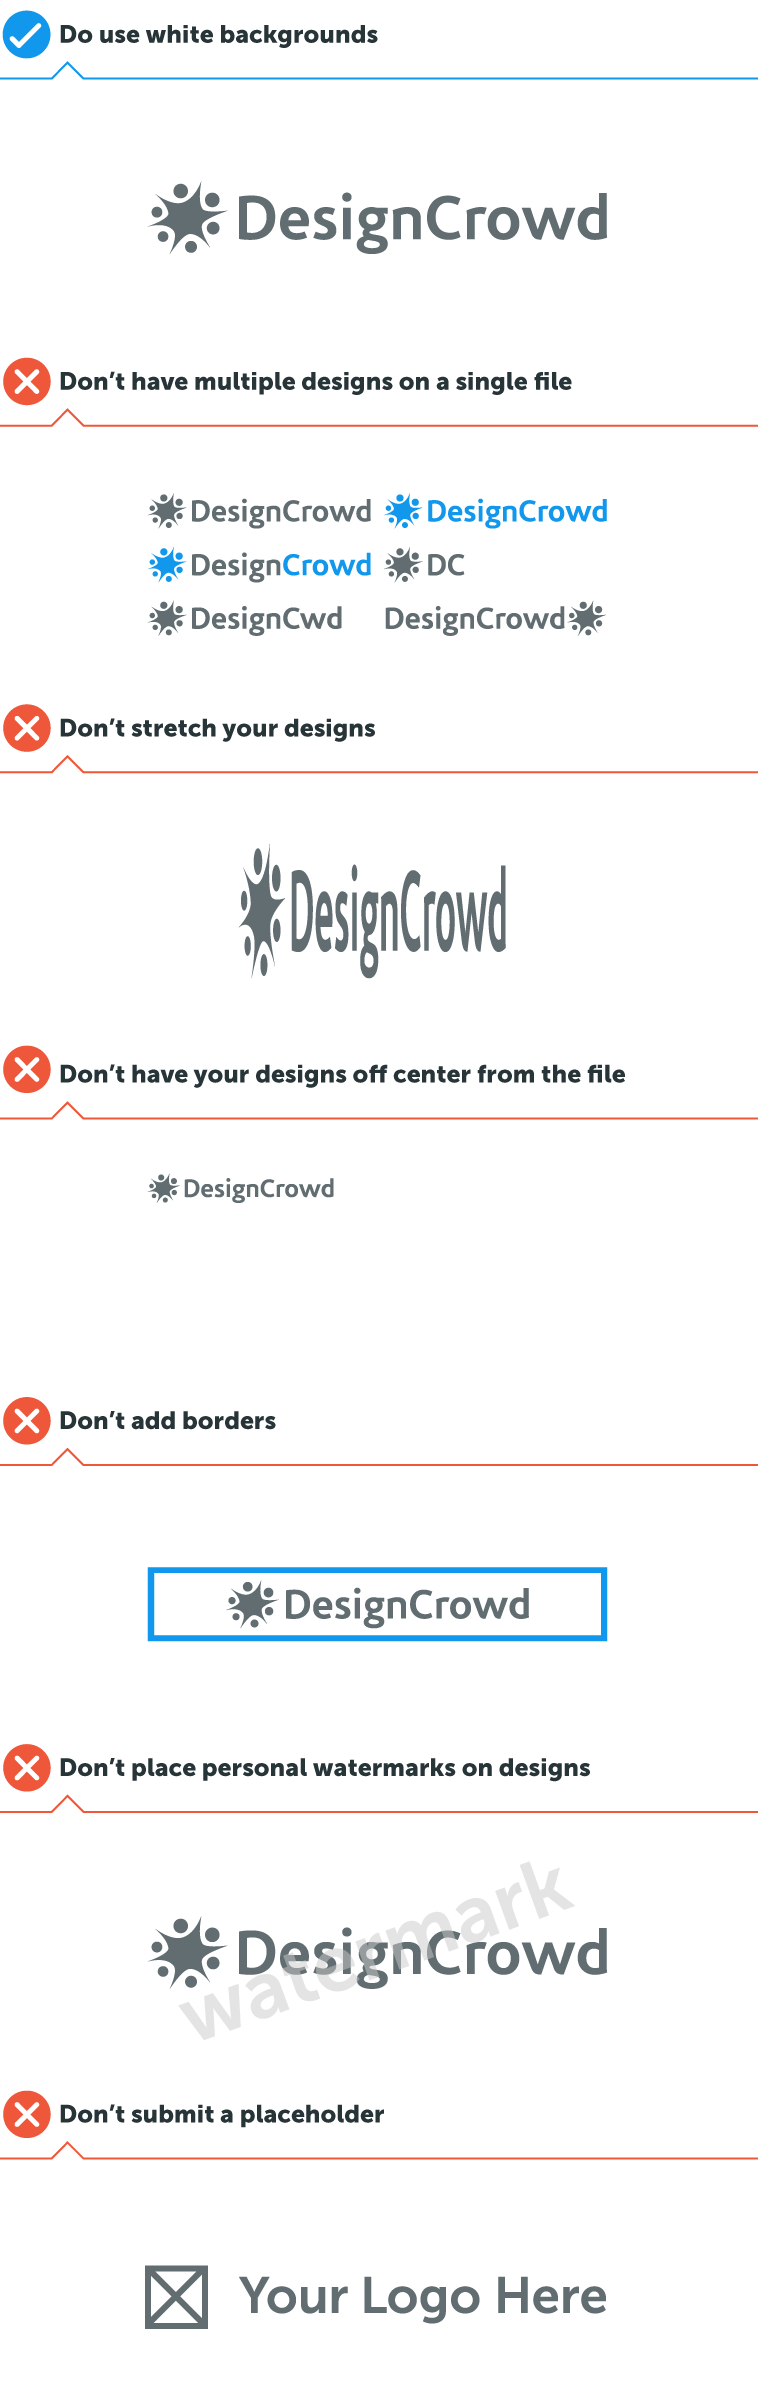 Designers Guide To Submitting Work To Design Contests On Designcrowd